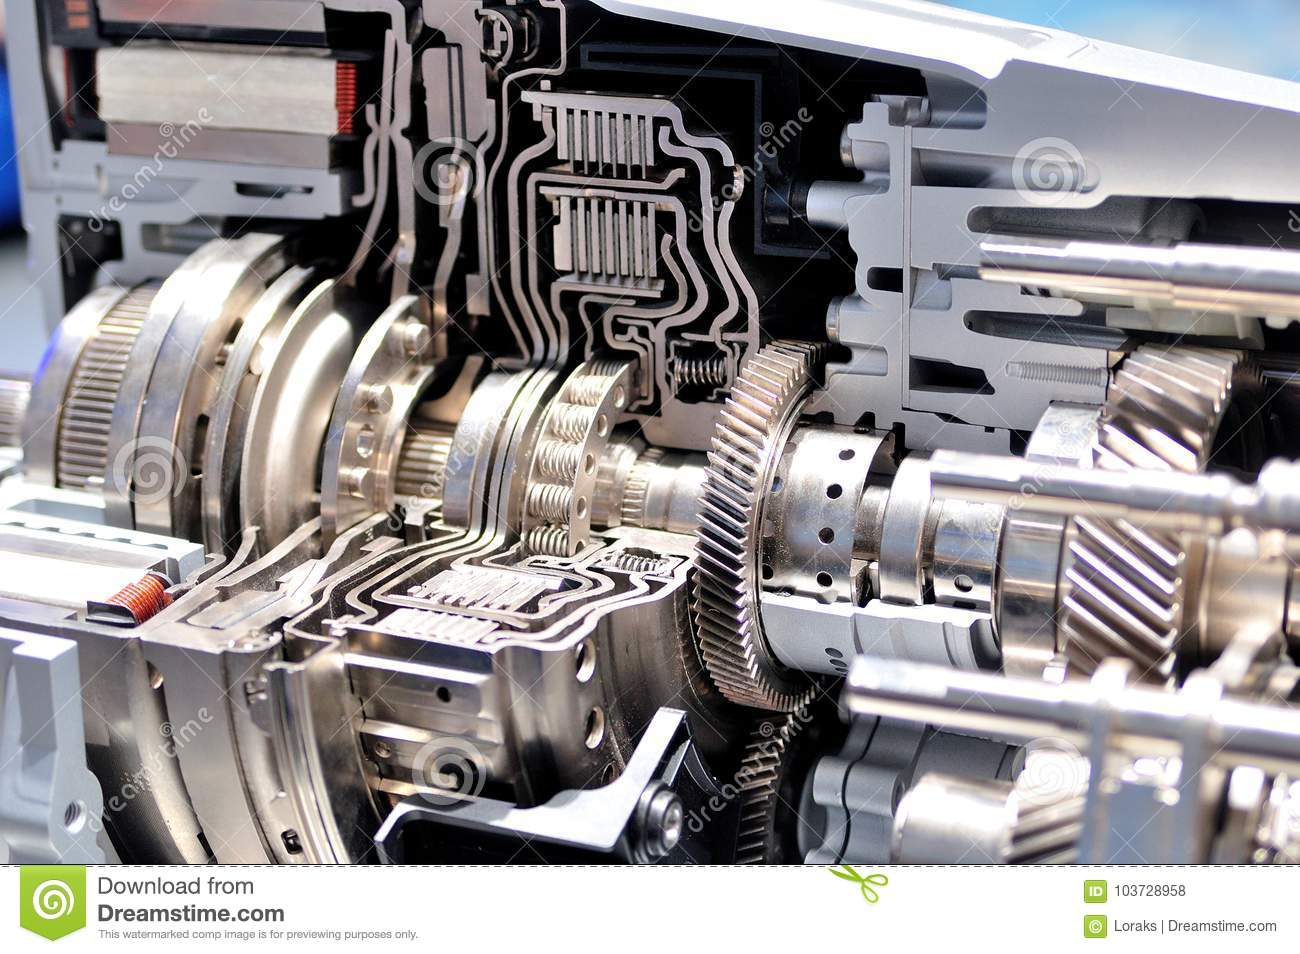 Cross Section Of An Automatic Transmission Stock Photo Image Of Power Gear 103728958